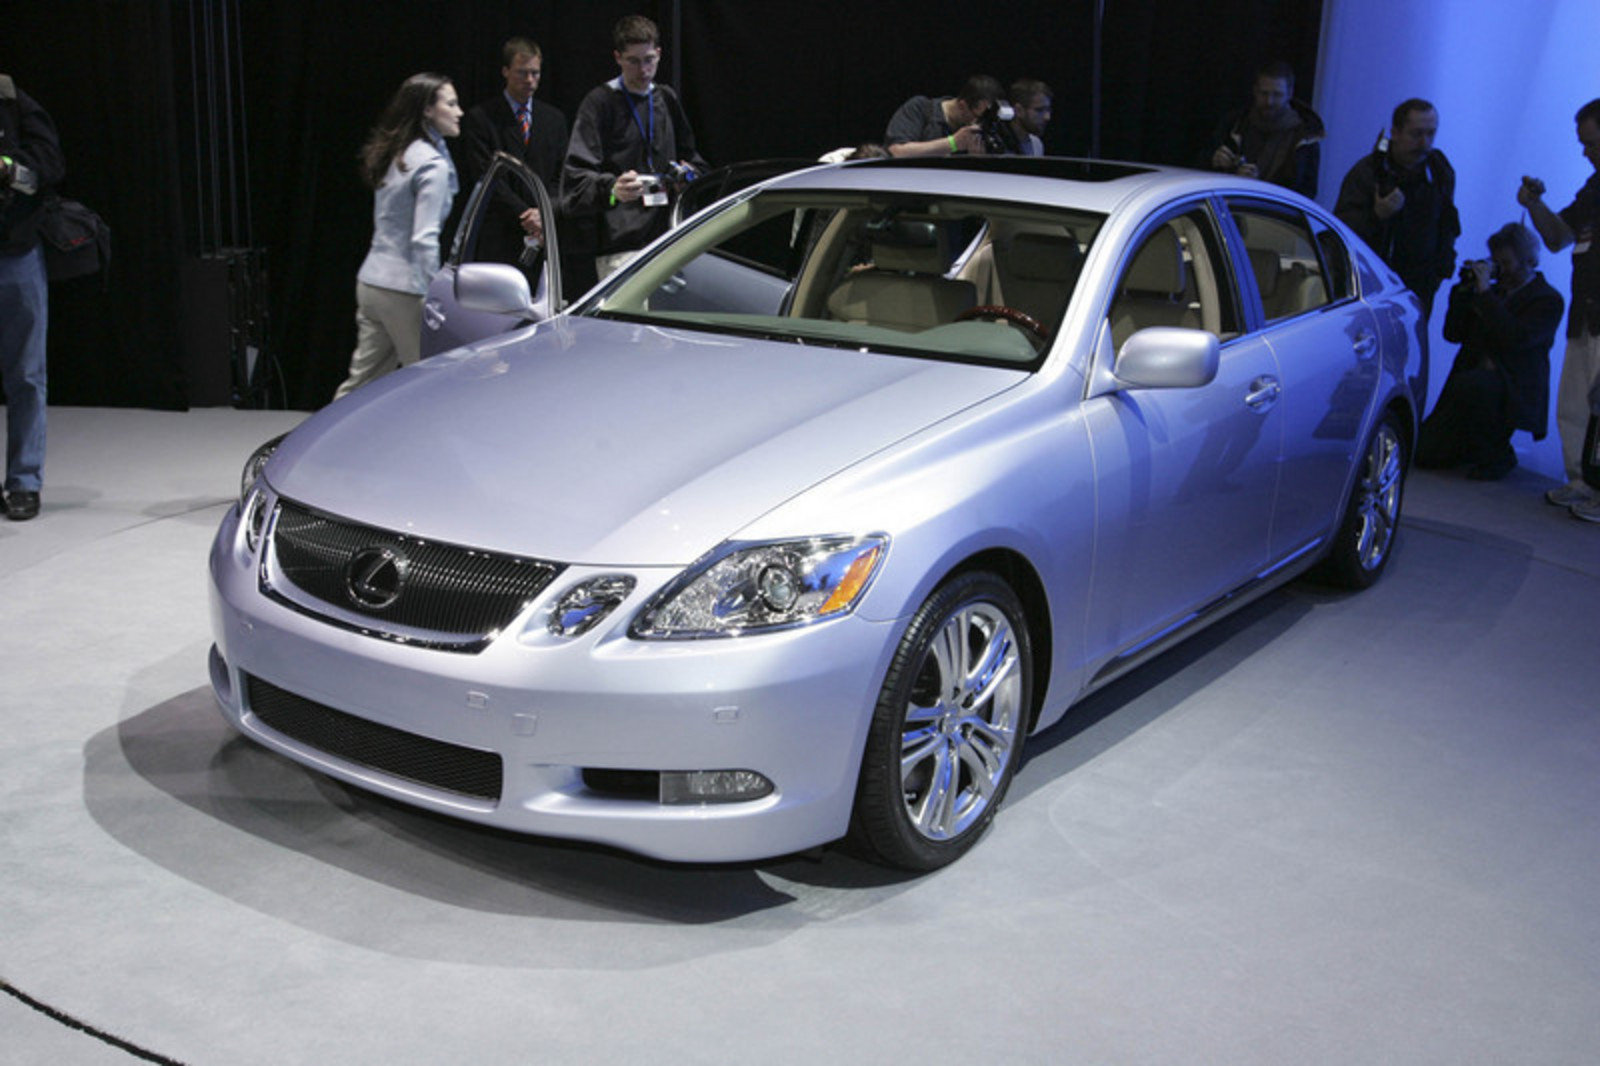 2007 lexus gs 450h picture 94553 car review top speed. Black Bedroom Furniture Sets. Home Design Ideas